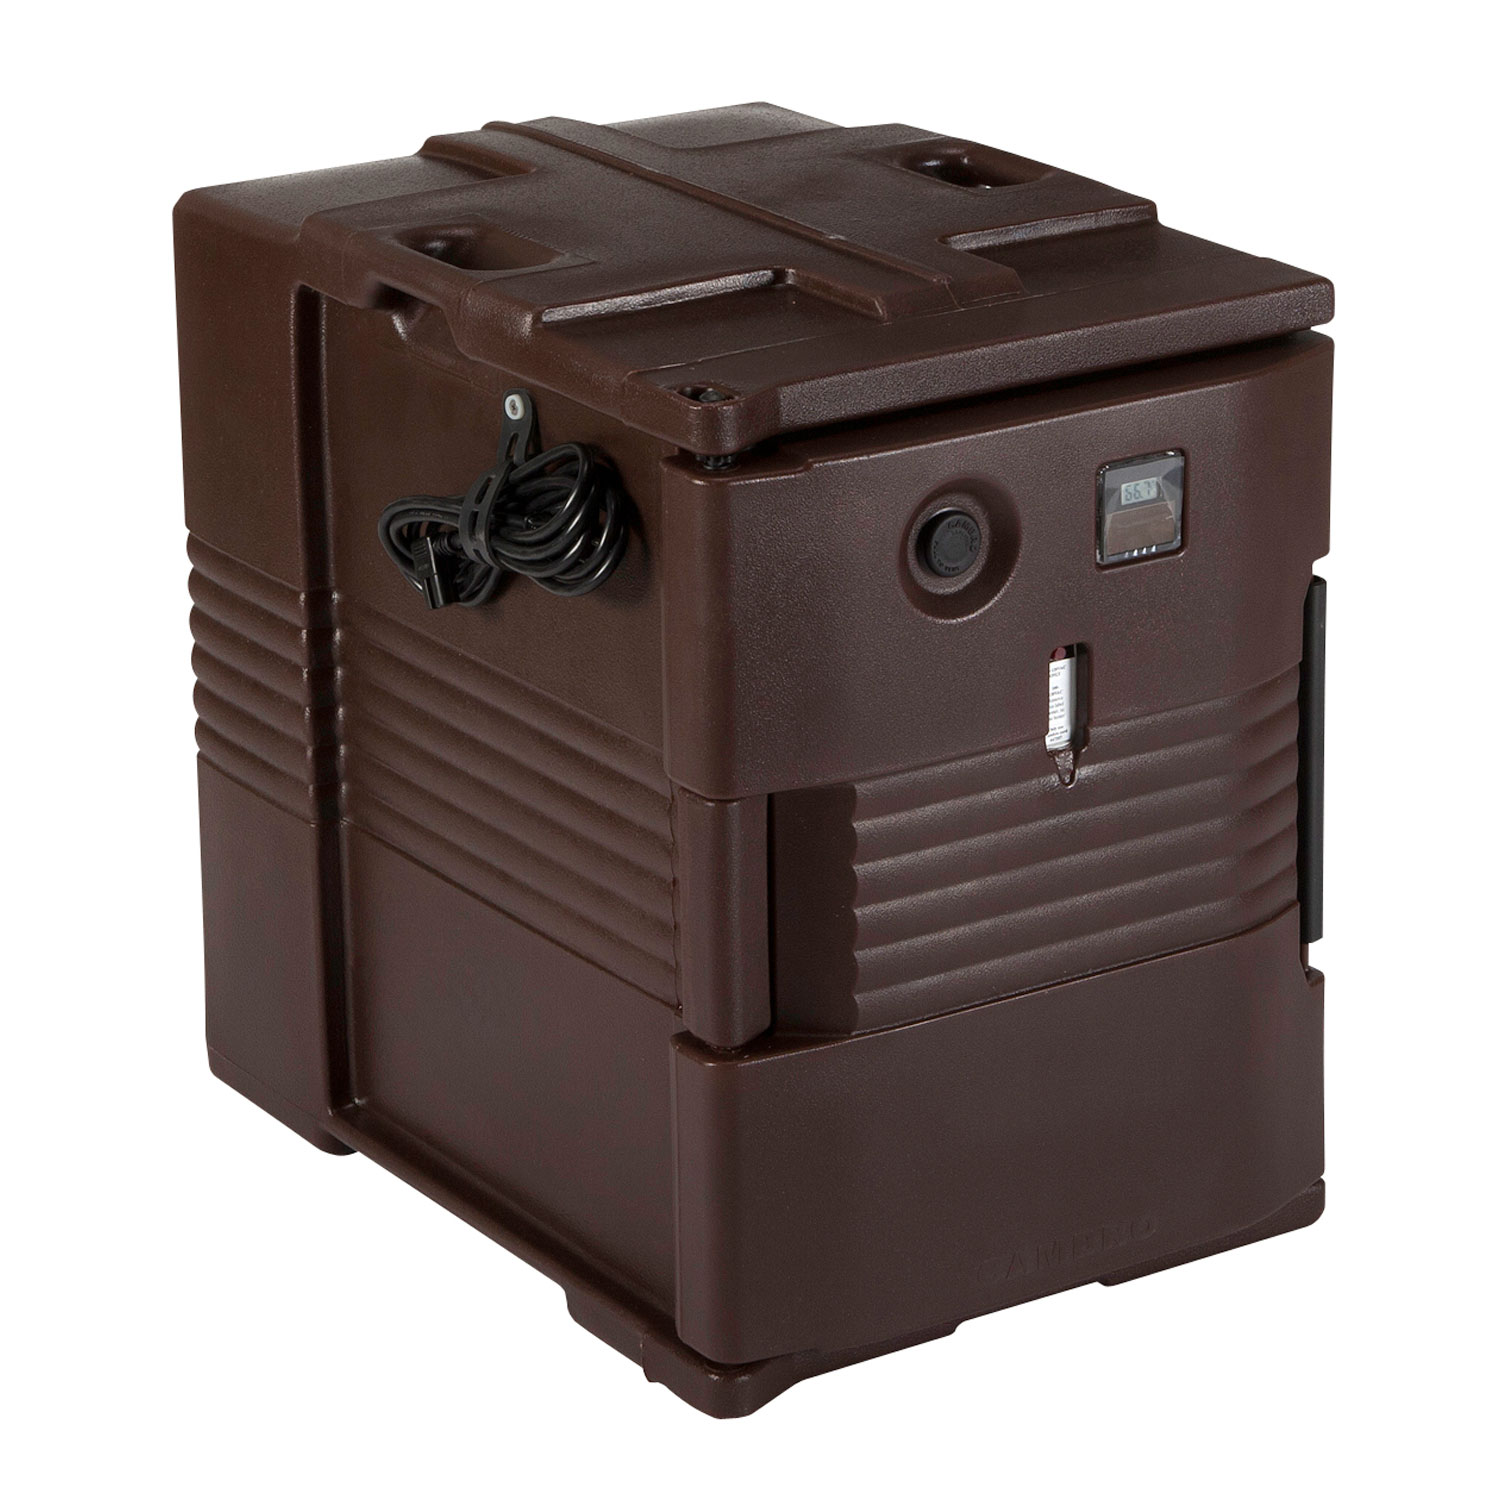 Cambro UPCH4002131 Camcarrier Hot Ultra Pancarrier - Front Loading, Dark Brown 220v